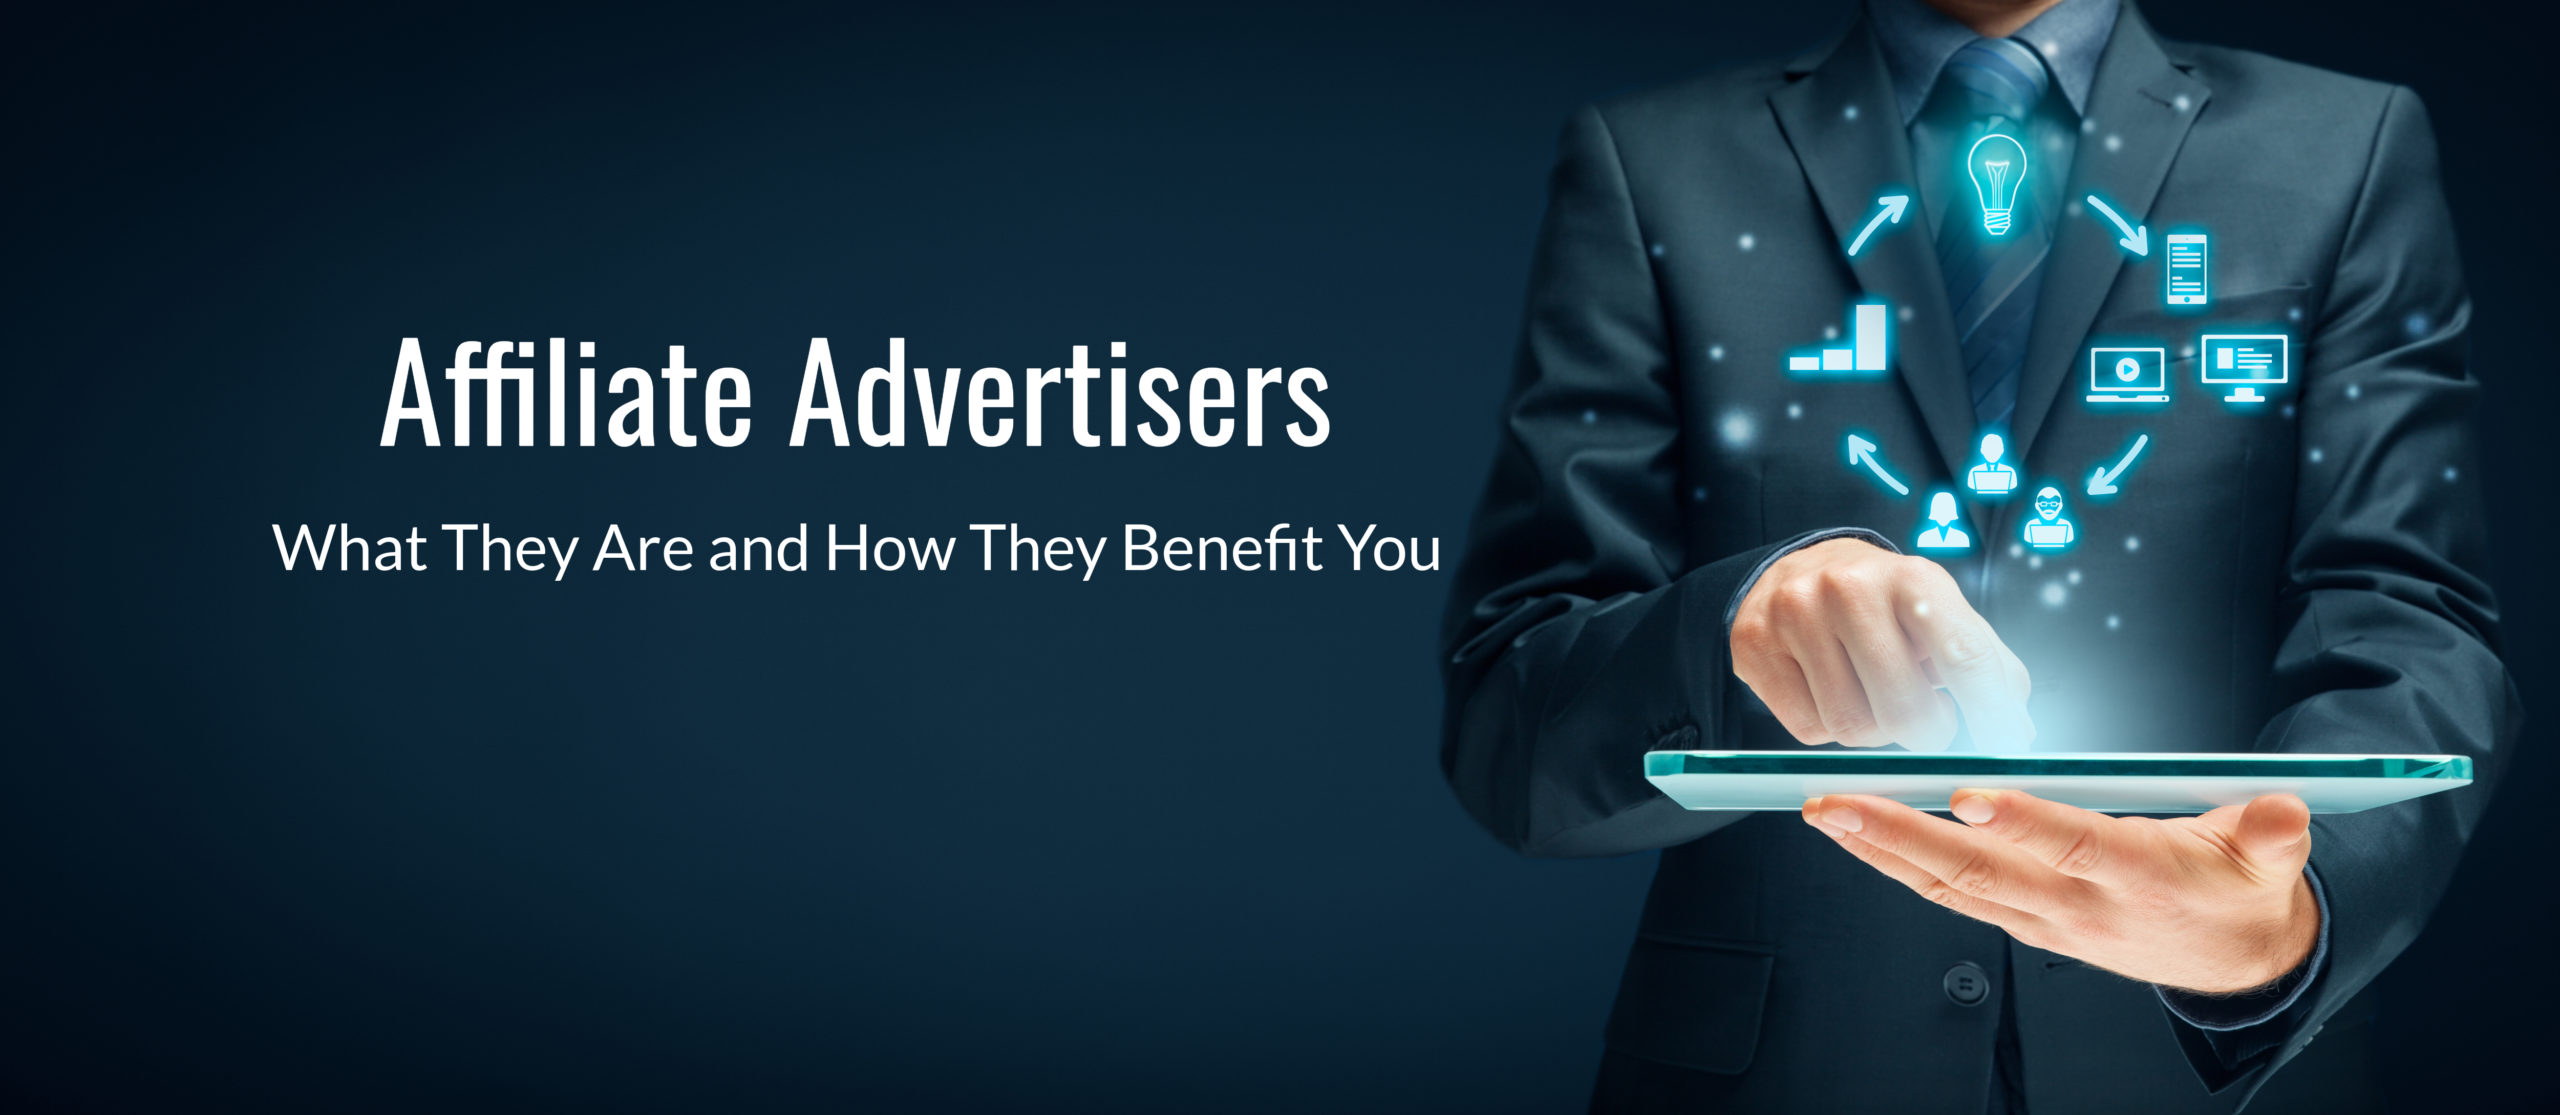 Affiliate Advertisers: What They Are and How They Benefit You